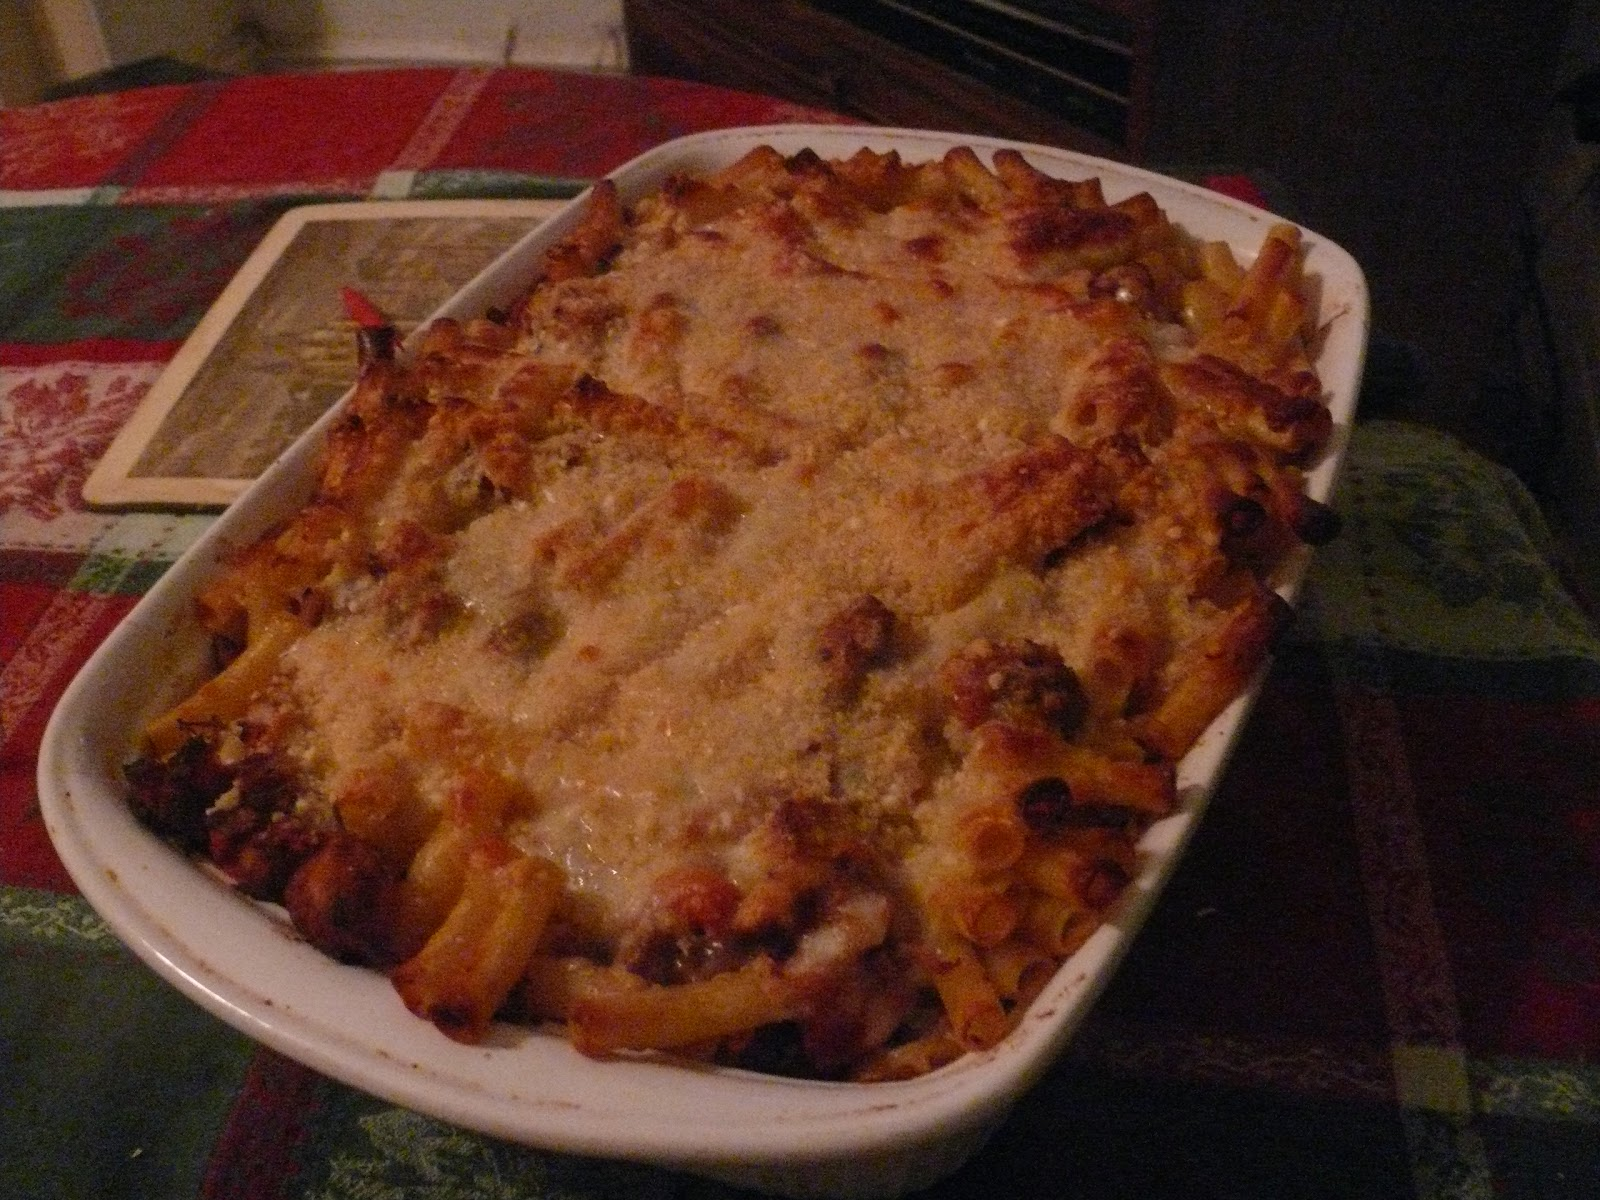 Baked Ziti With Spicy Pork and Sausage Ragu